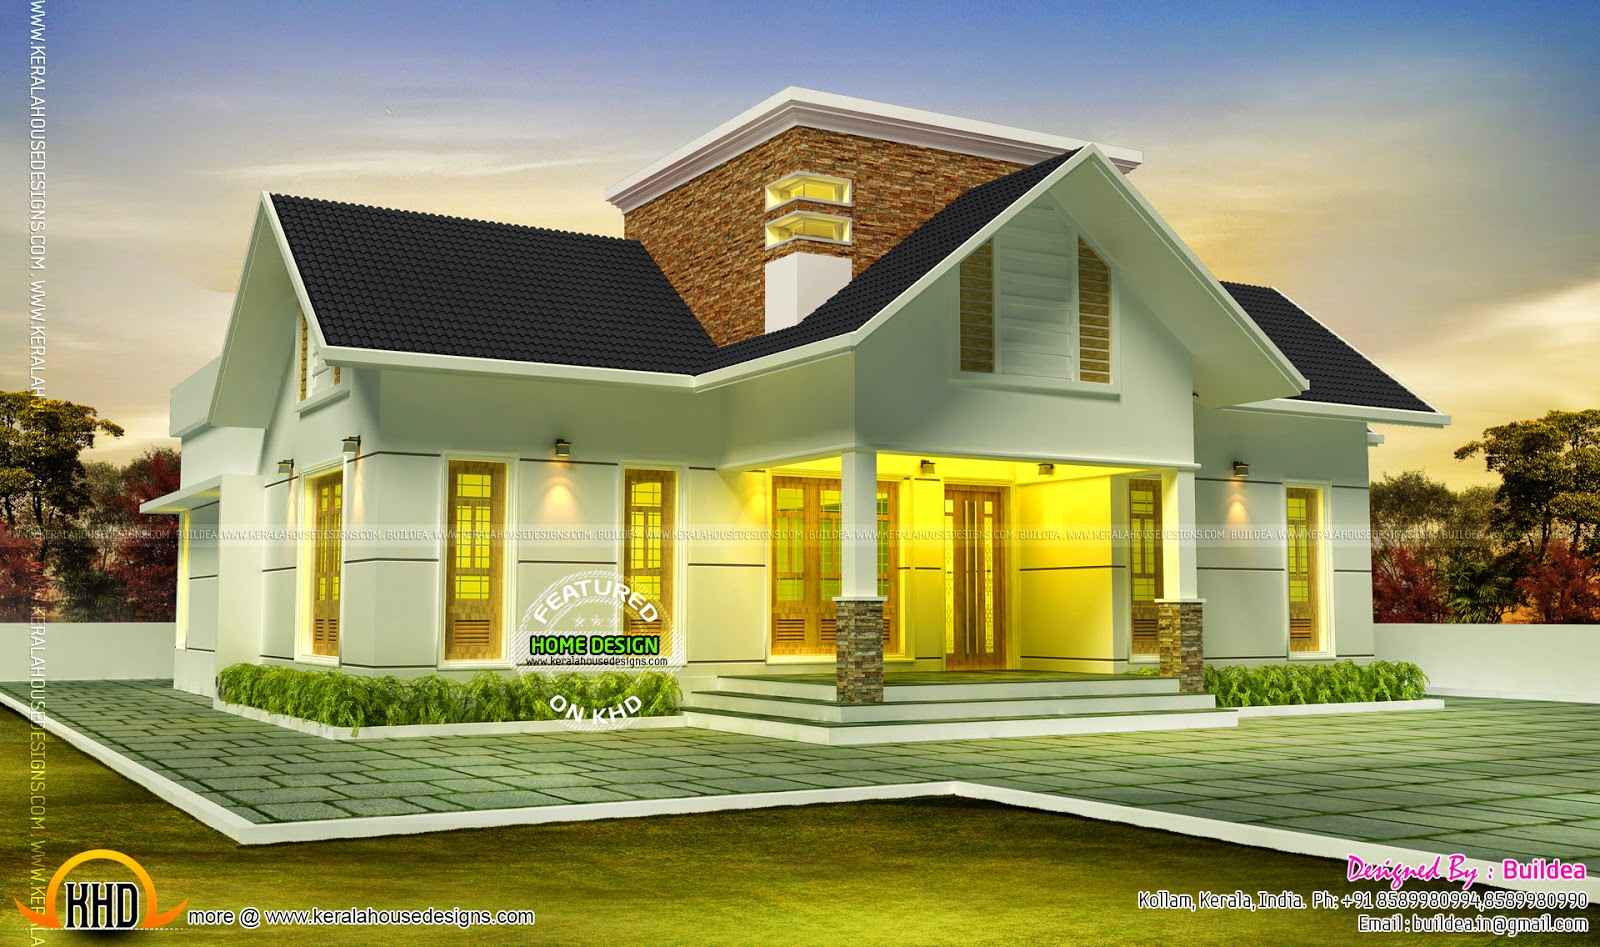 Very beautiful house kerala home design and floor plans for House beautiful homes